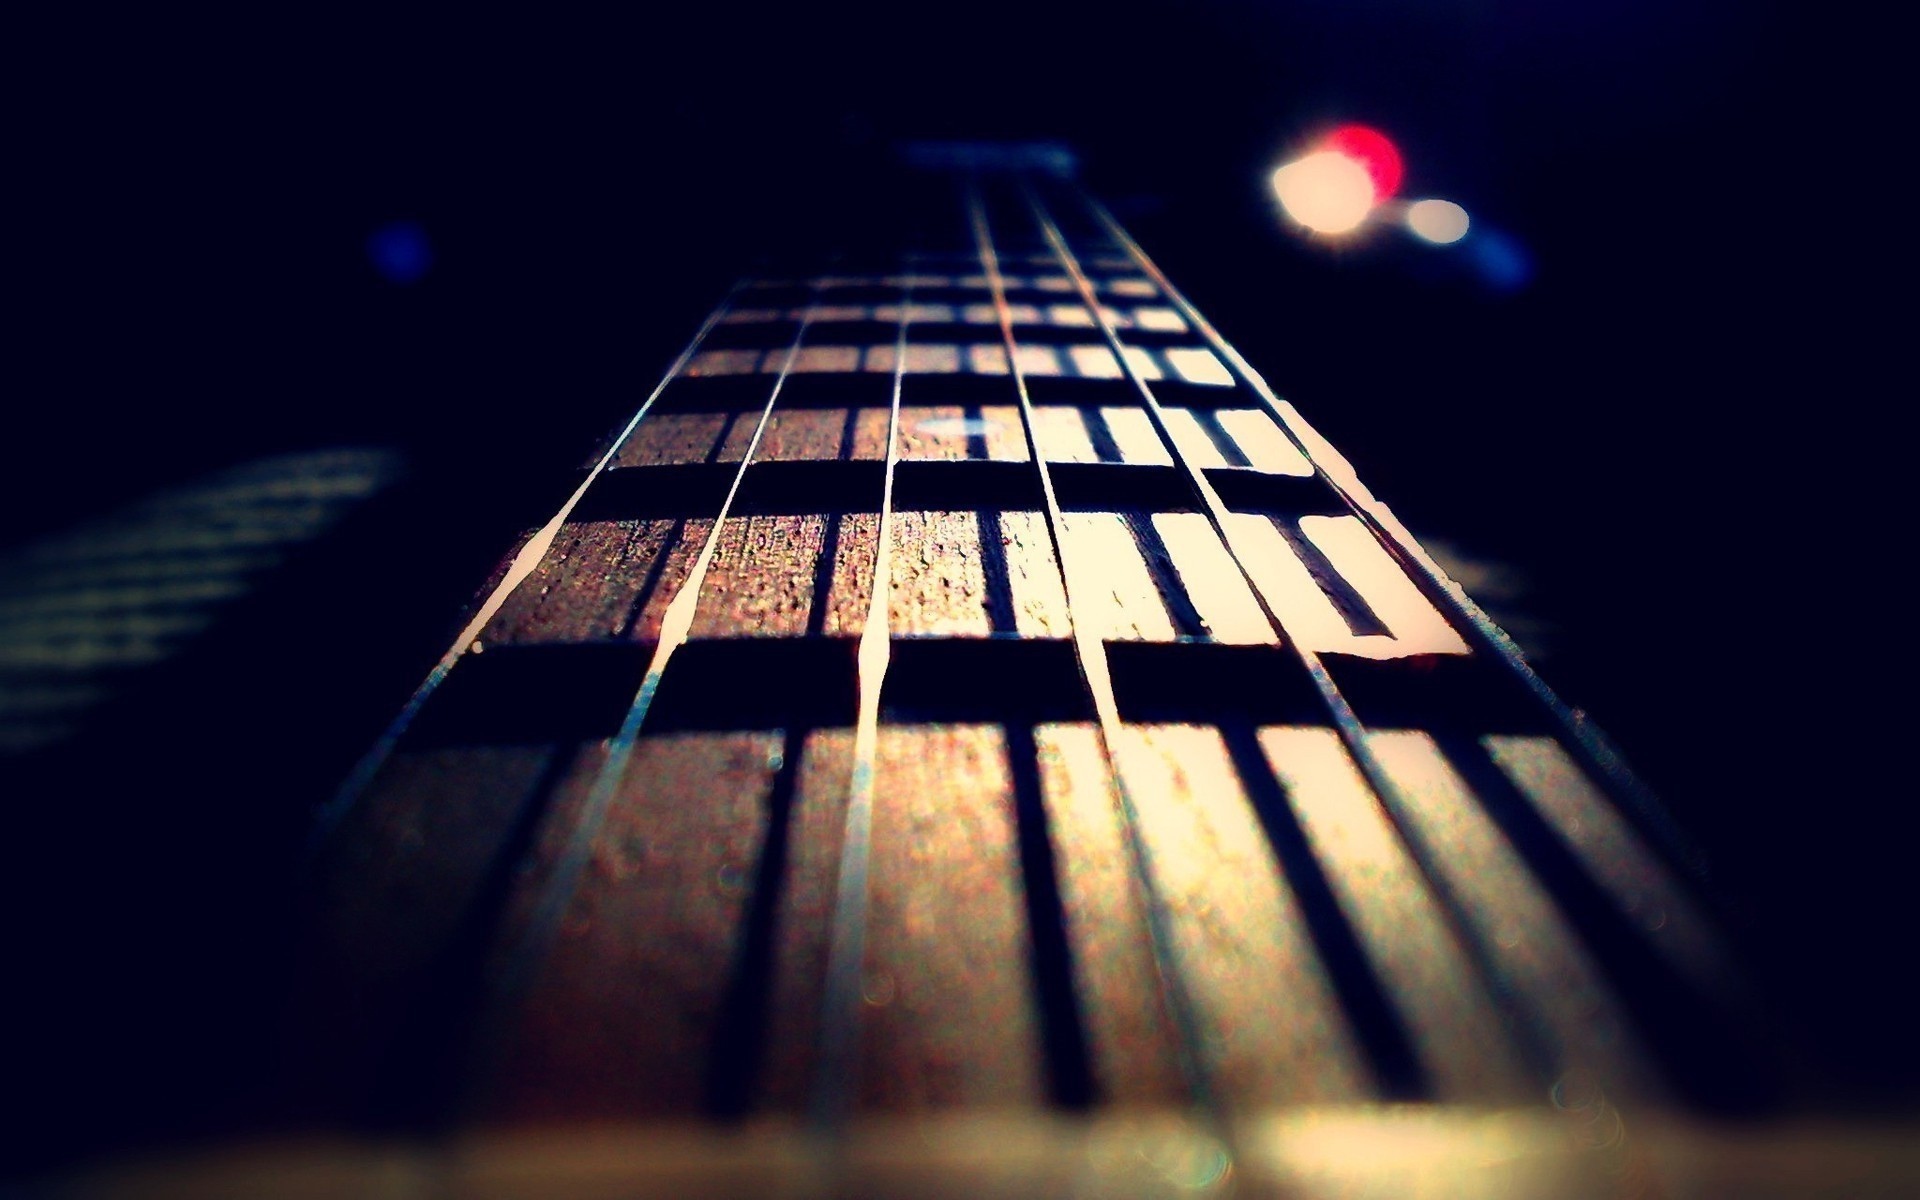 1920x1200 HD Guitar Wallpapers Source · Acoustic Guitar wallpaper Download free  awesome full HD